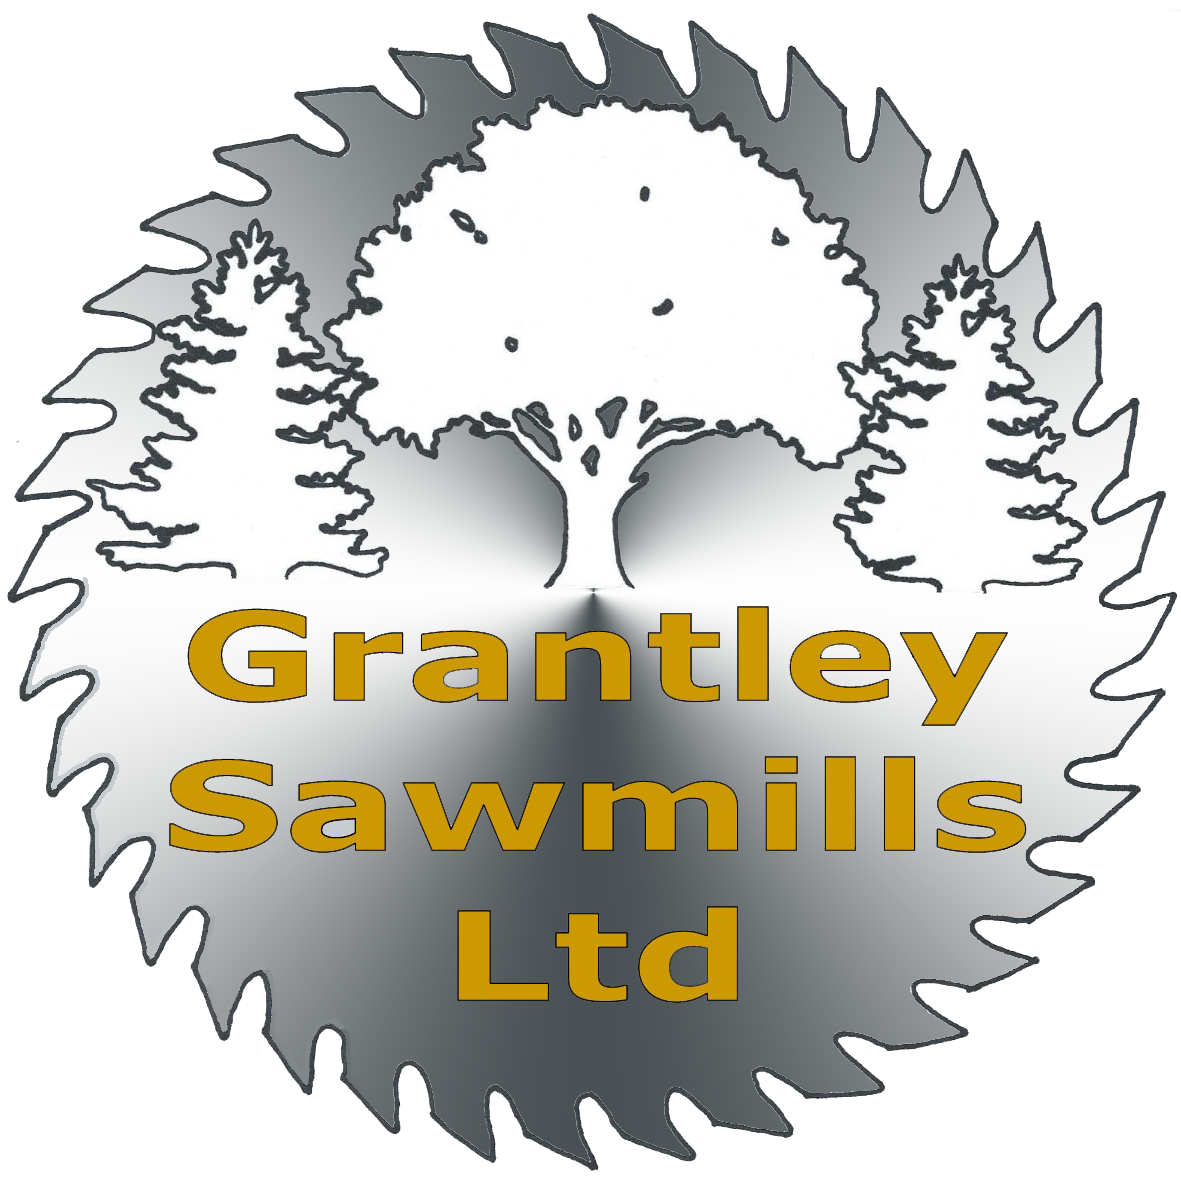 Grantley Sawmills